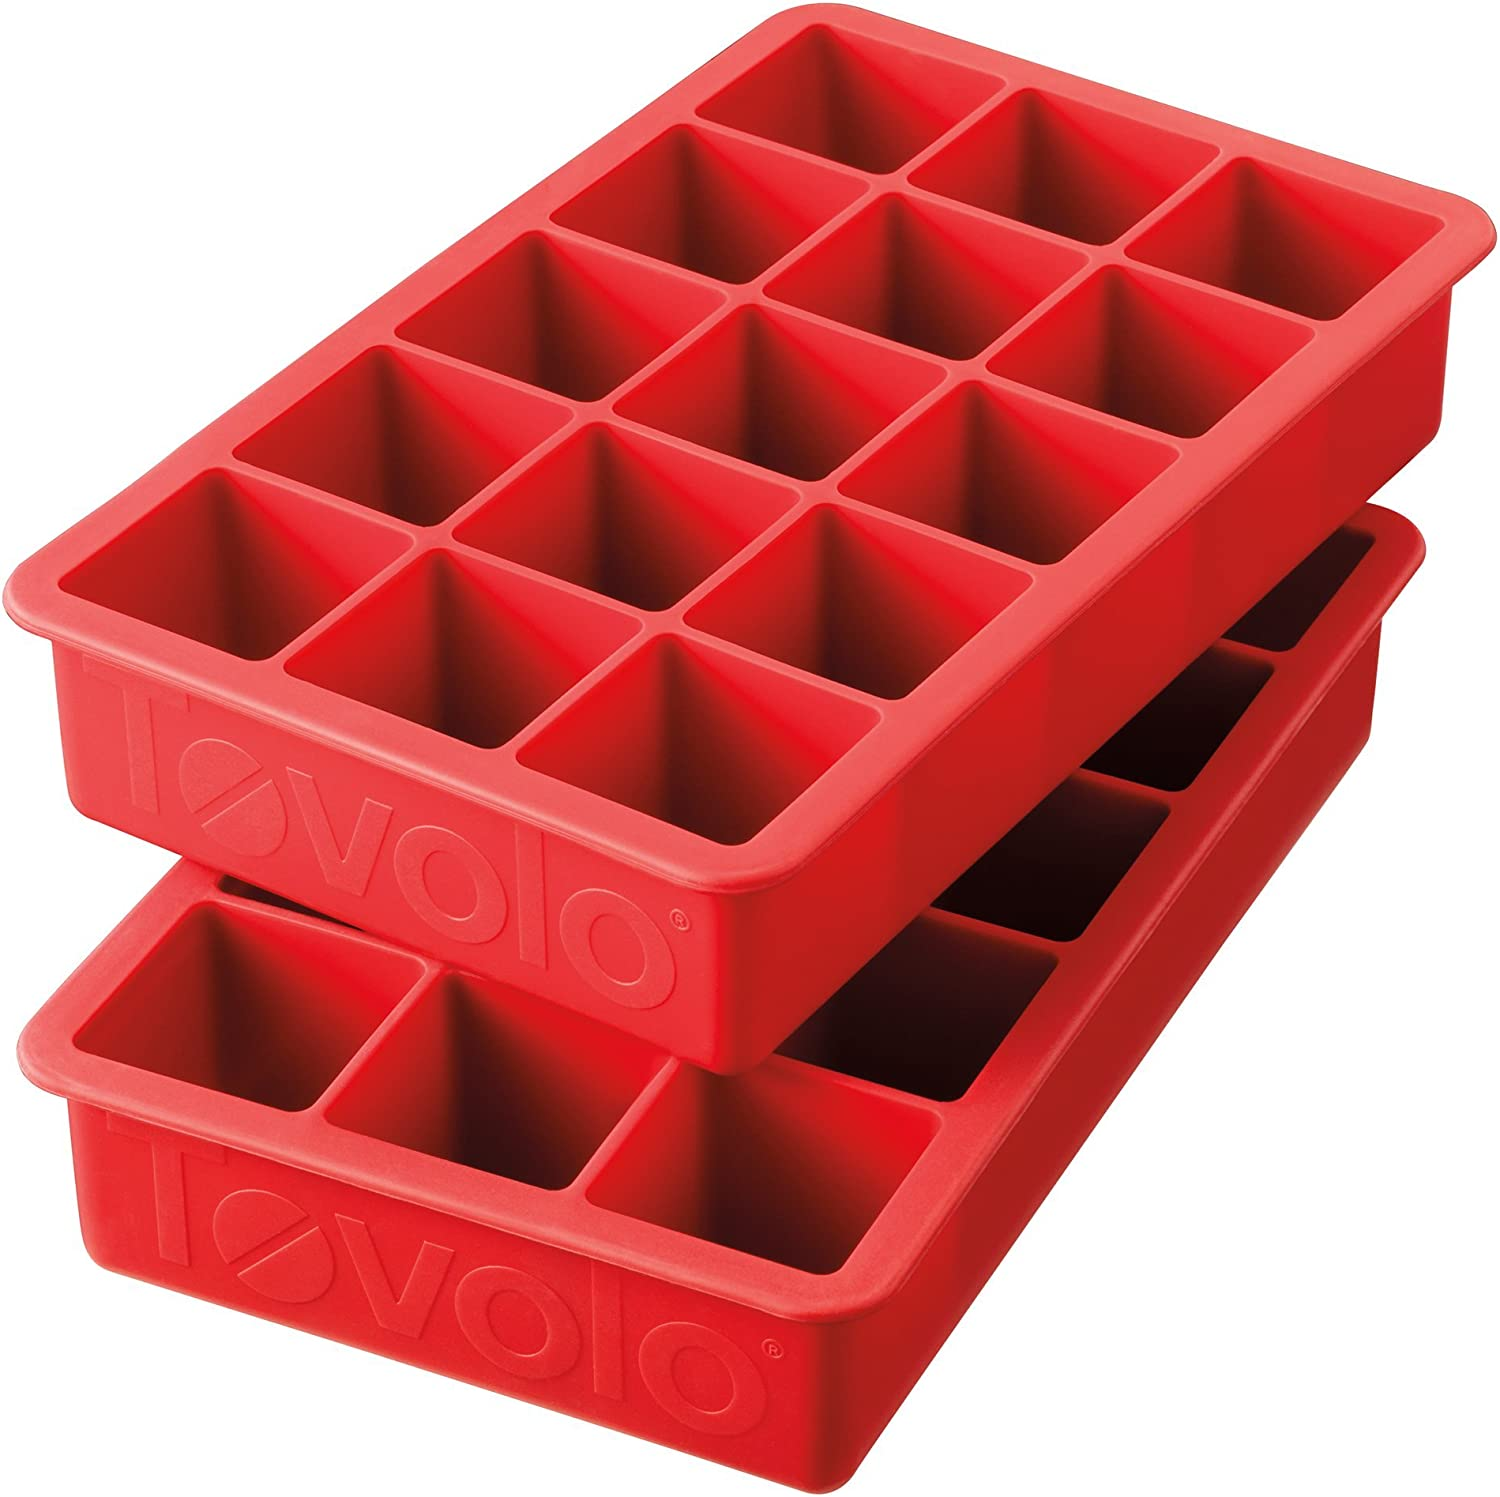 """Tovolo Perfect Cube Ice Mold Trays, Sturdy Silicone, Fade Resistant, 1.25"""" Cubes, Set of 2, Candy Apple Red"""